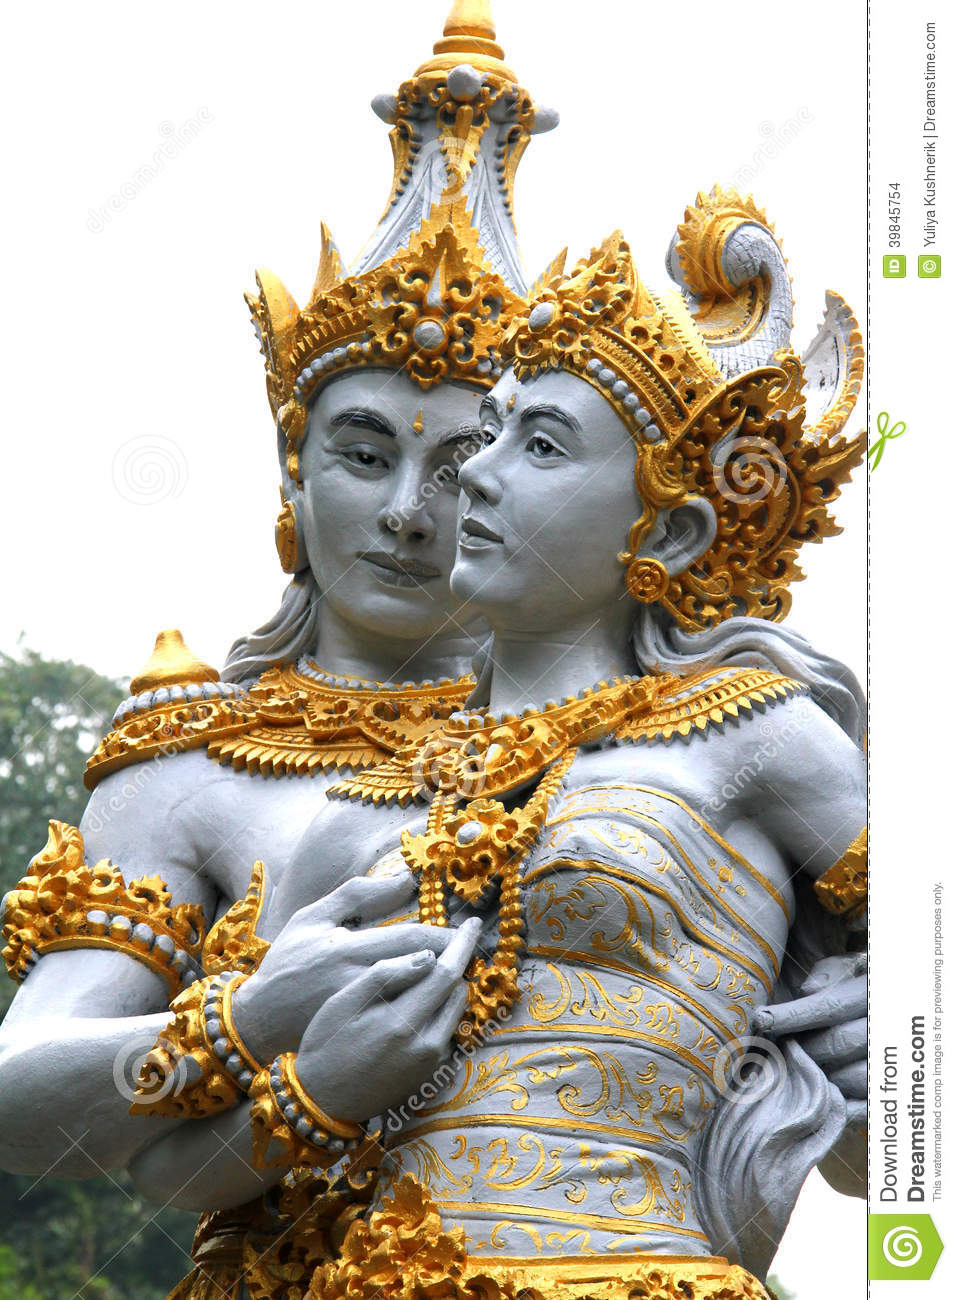 Couple Of Balinese Gods Stock Photo Image Of Exterior 39845754